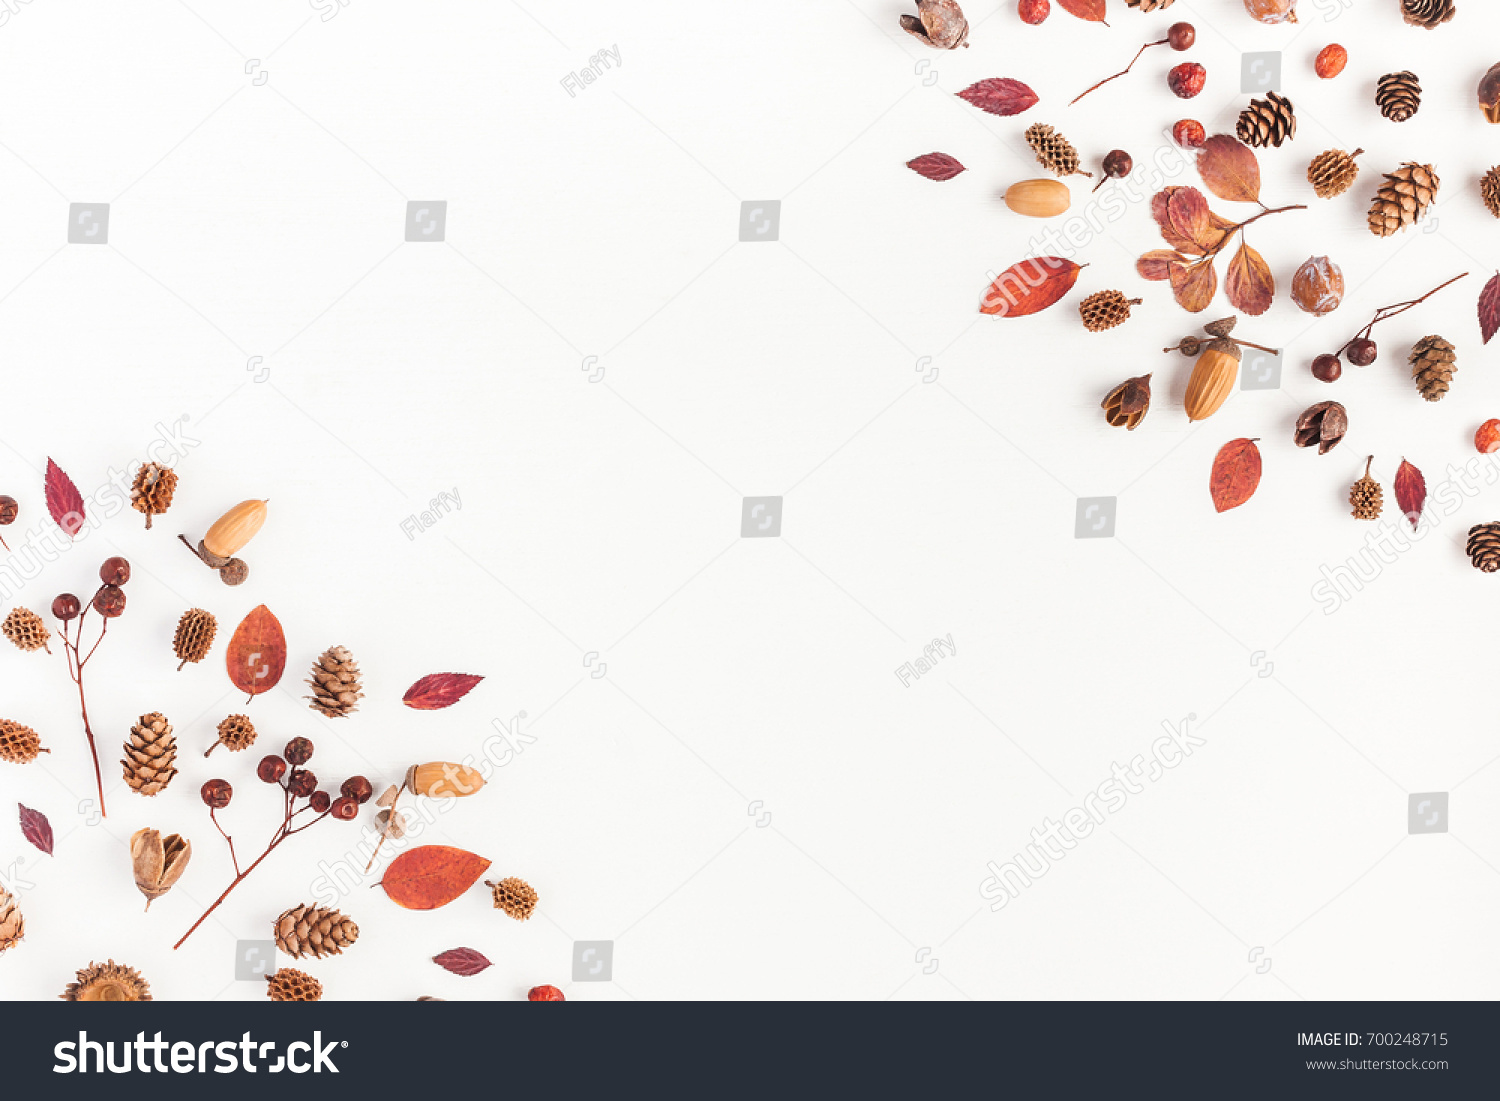 Autumn composition. Frame made of autumn leaves, acorn, pine cones on white background. Flat lay, top view, copy space #700248715